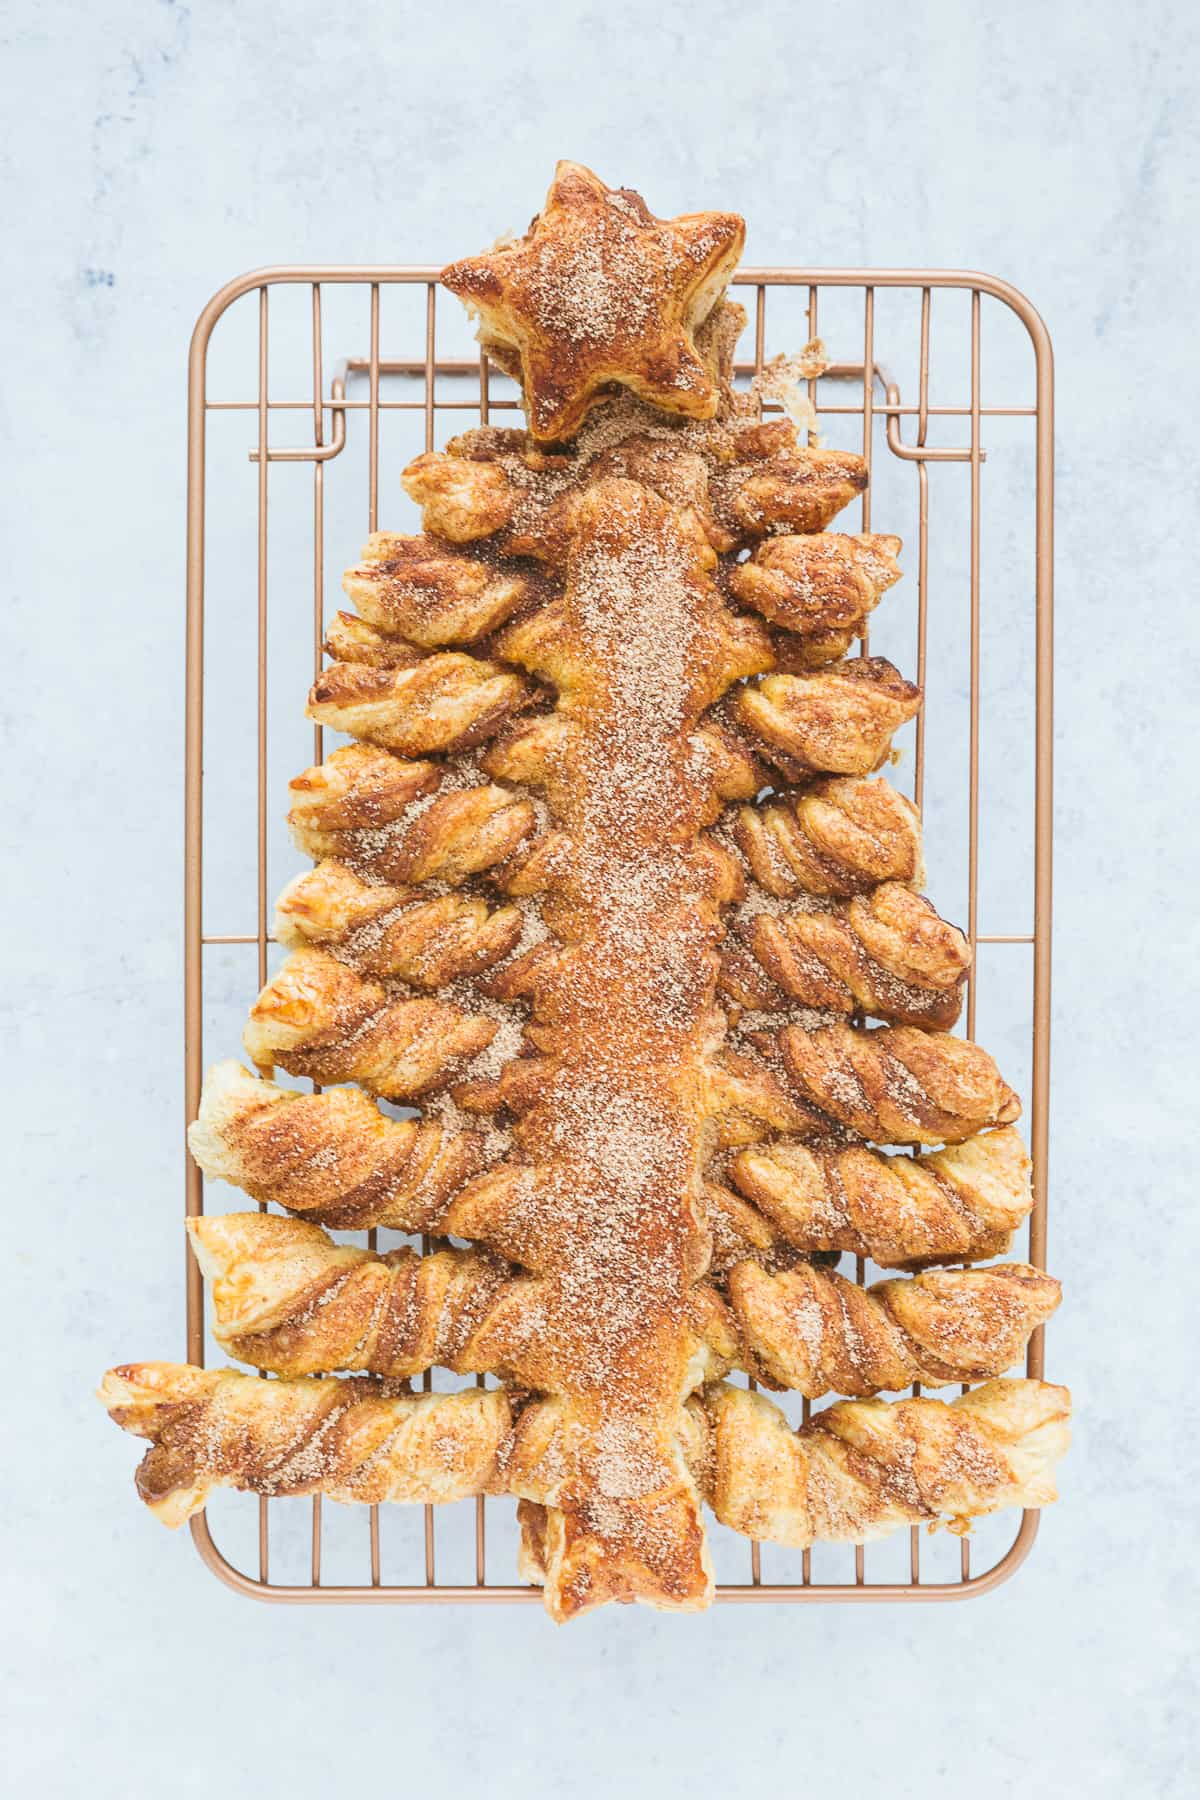 A festive Christmas tree made from ready rolled puff pastry that has been twisted into a christmas tree shape. The pastry has been filled with Biscoff spread and topped with cinnamon sugar.